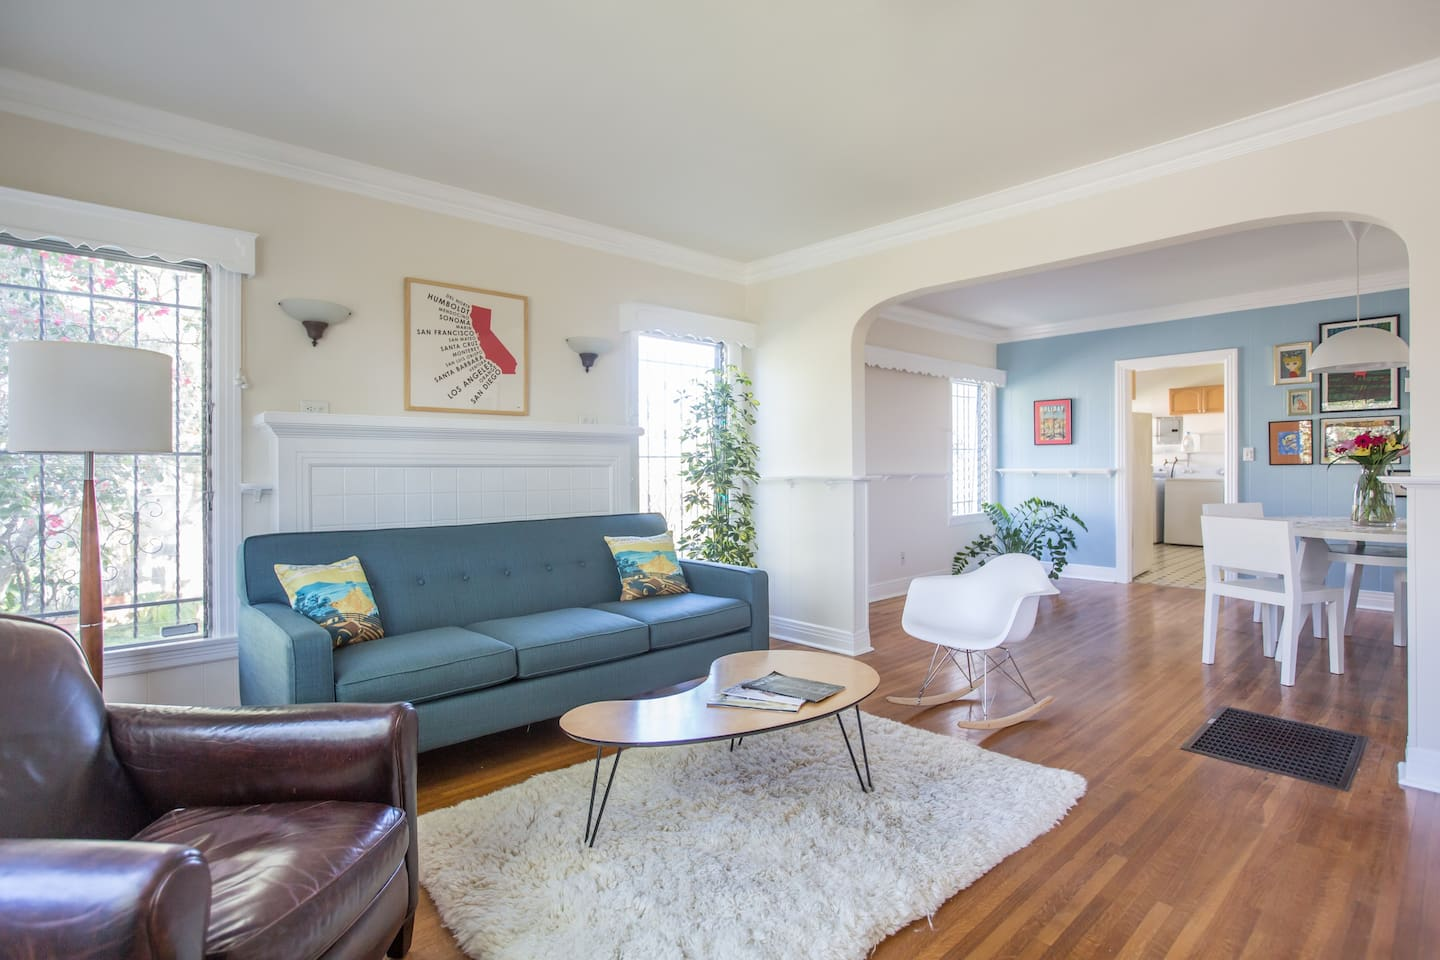 Bright and sunny living room with mid century modern touches.